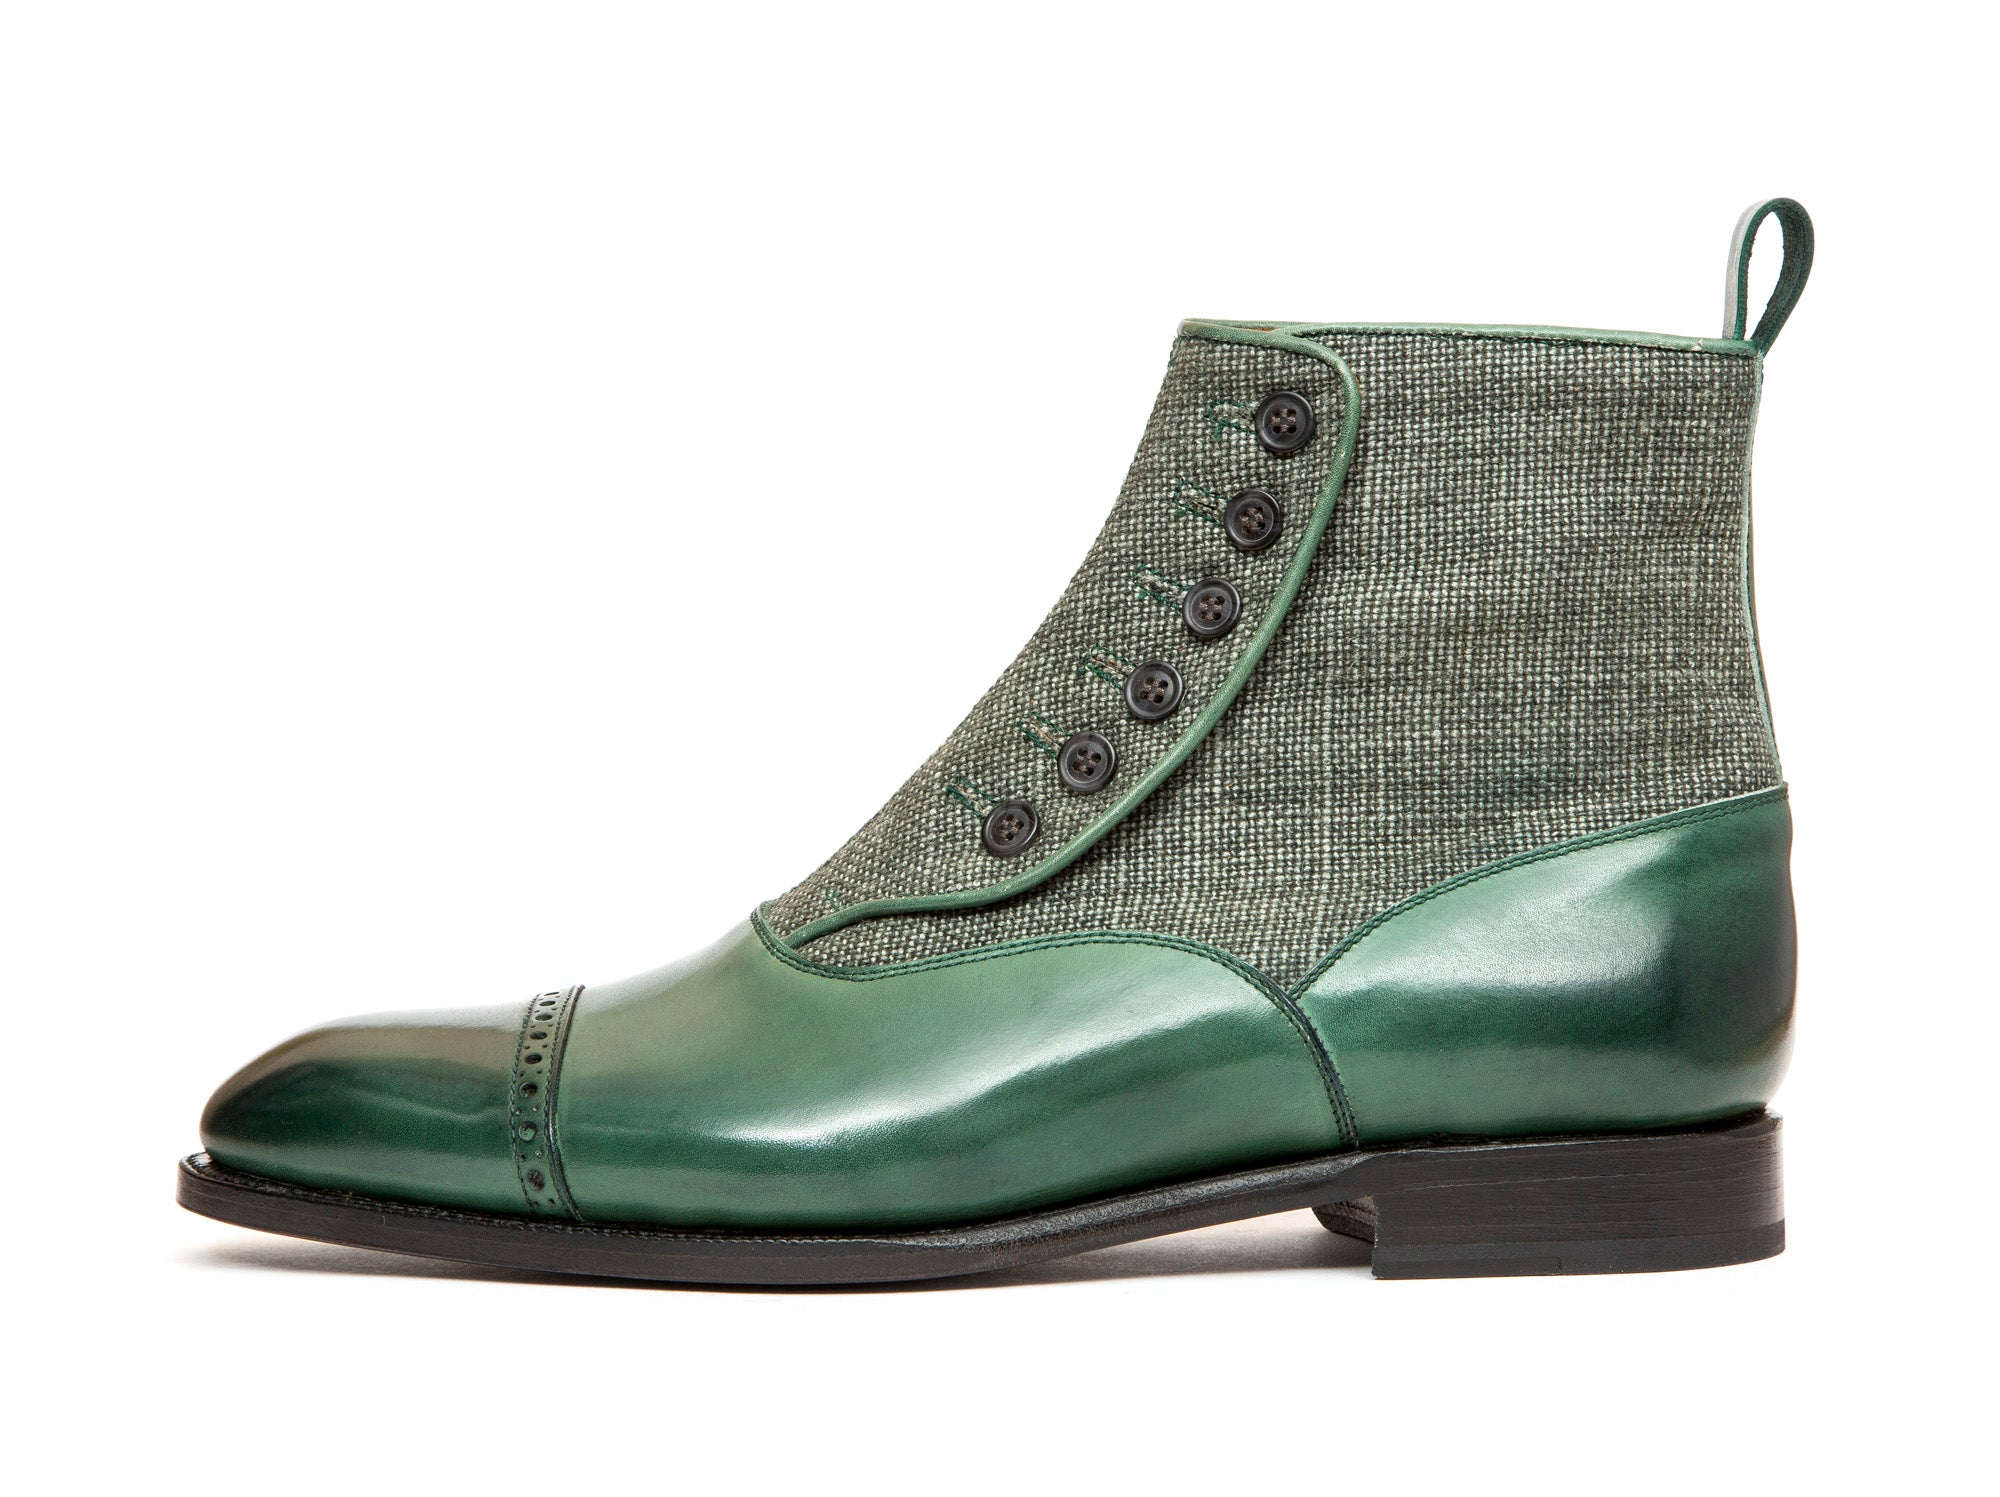 Carkeek - MTO - Forest Green Calf / Military Canvas